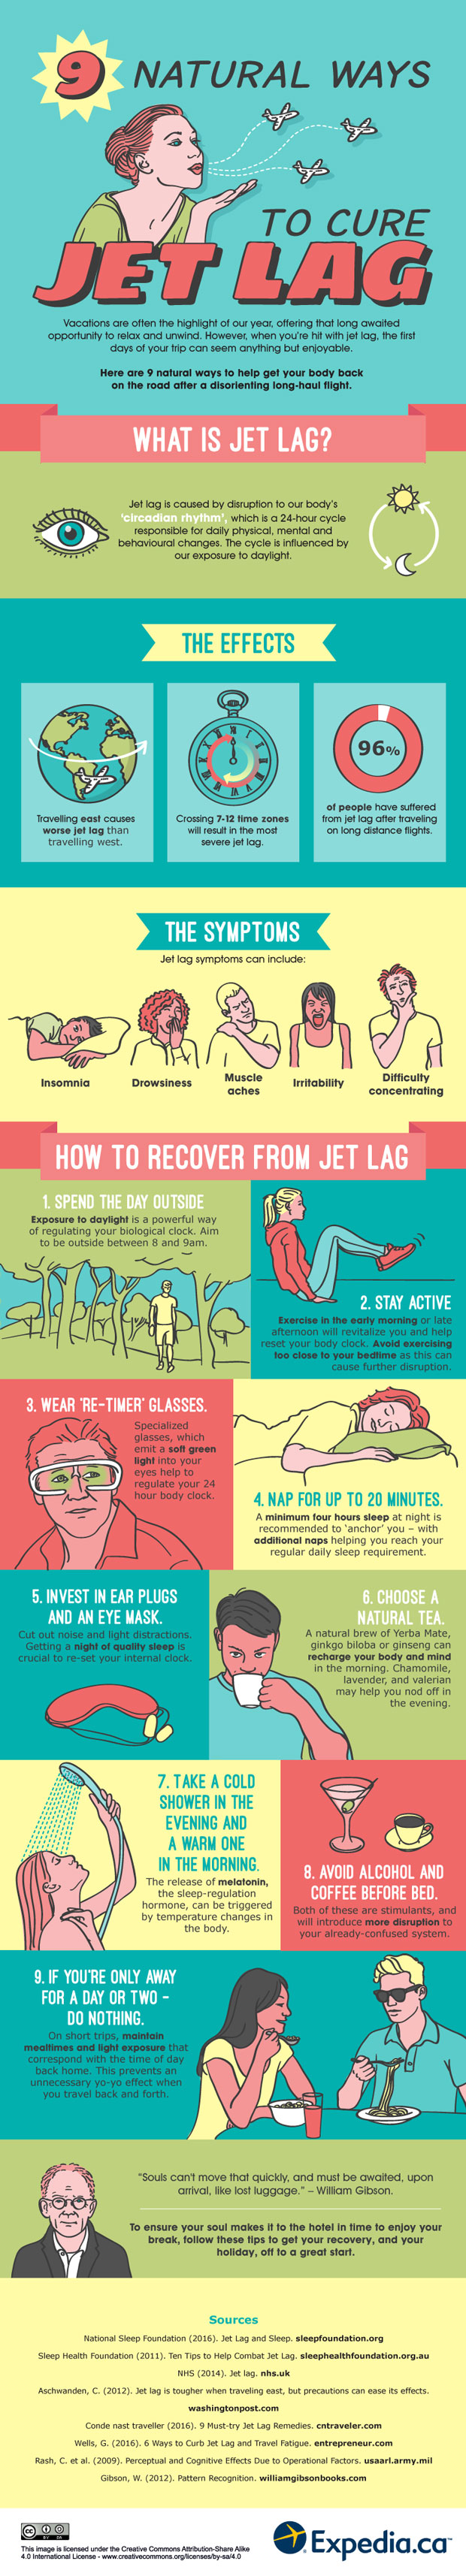 Natural Ways To Deal With Jet Lag